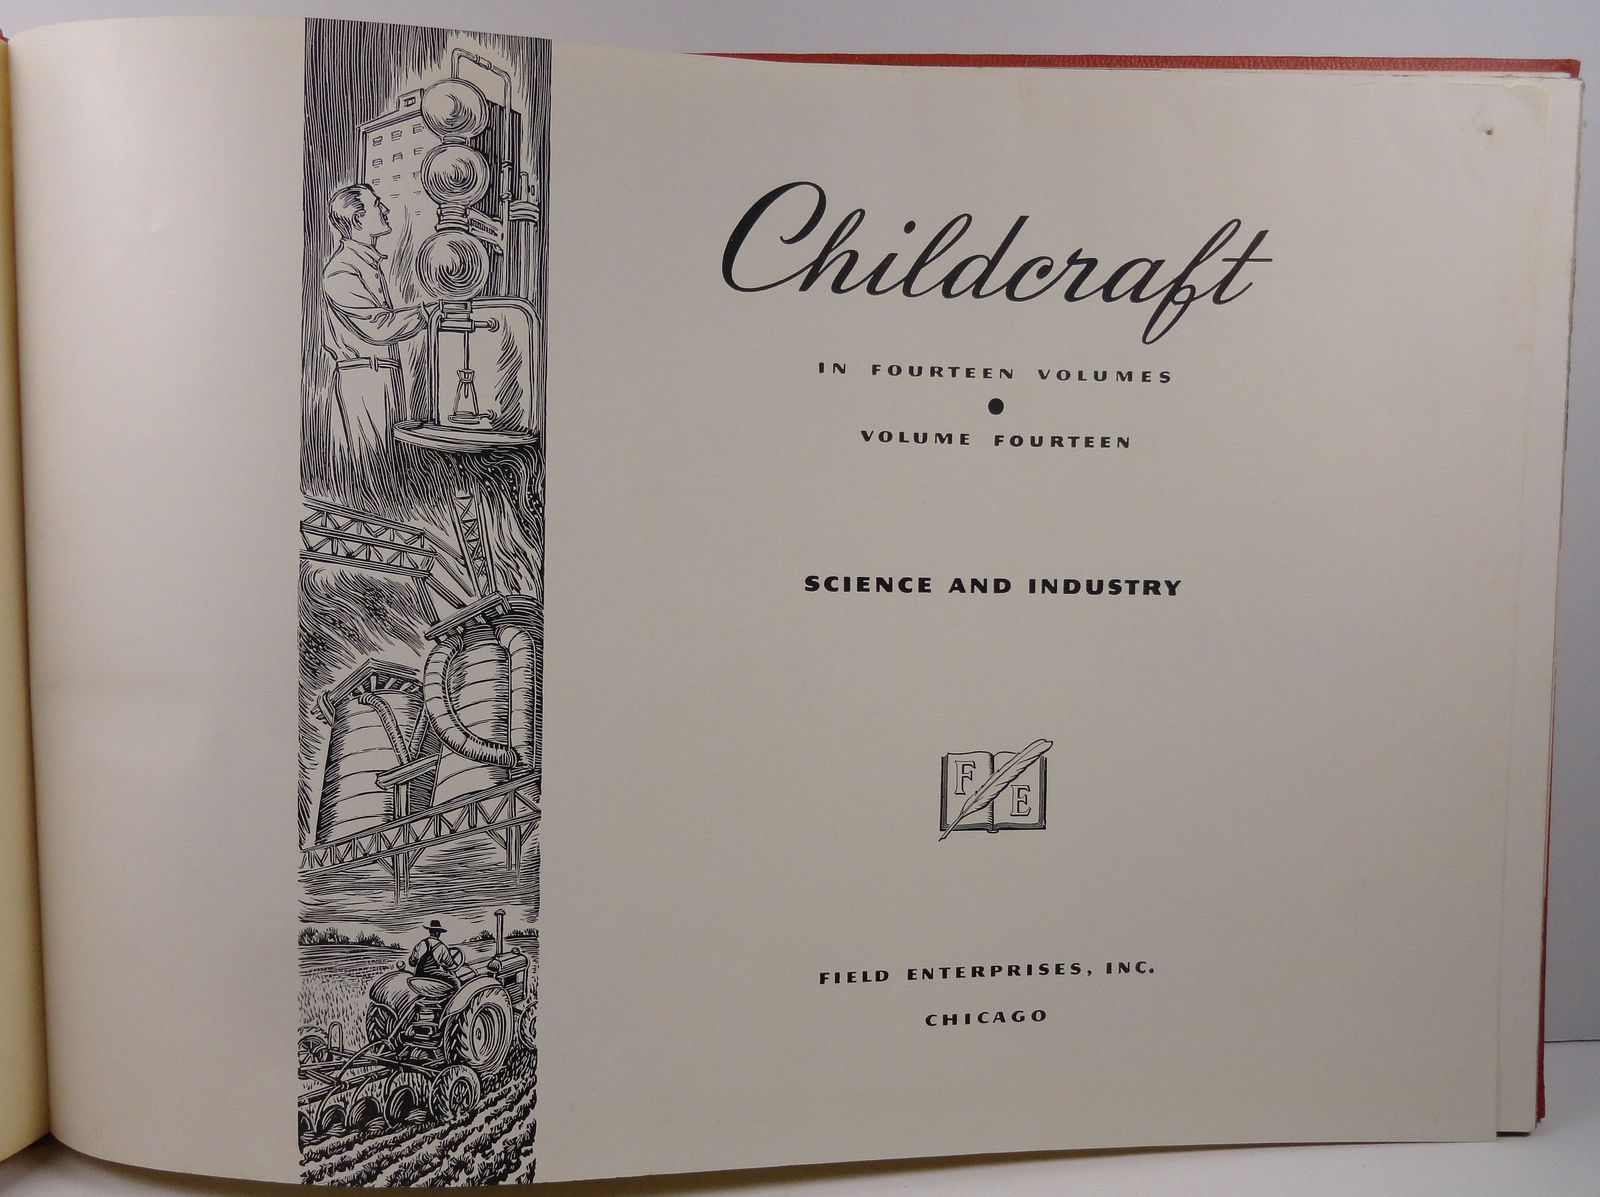 Childcraft Volume 14 Science and Industry 1949